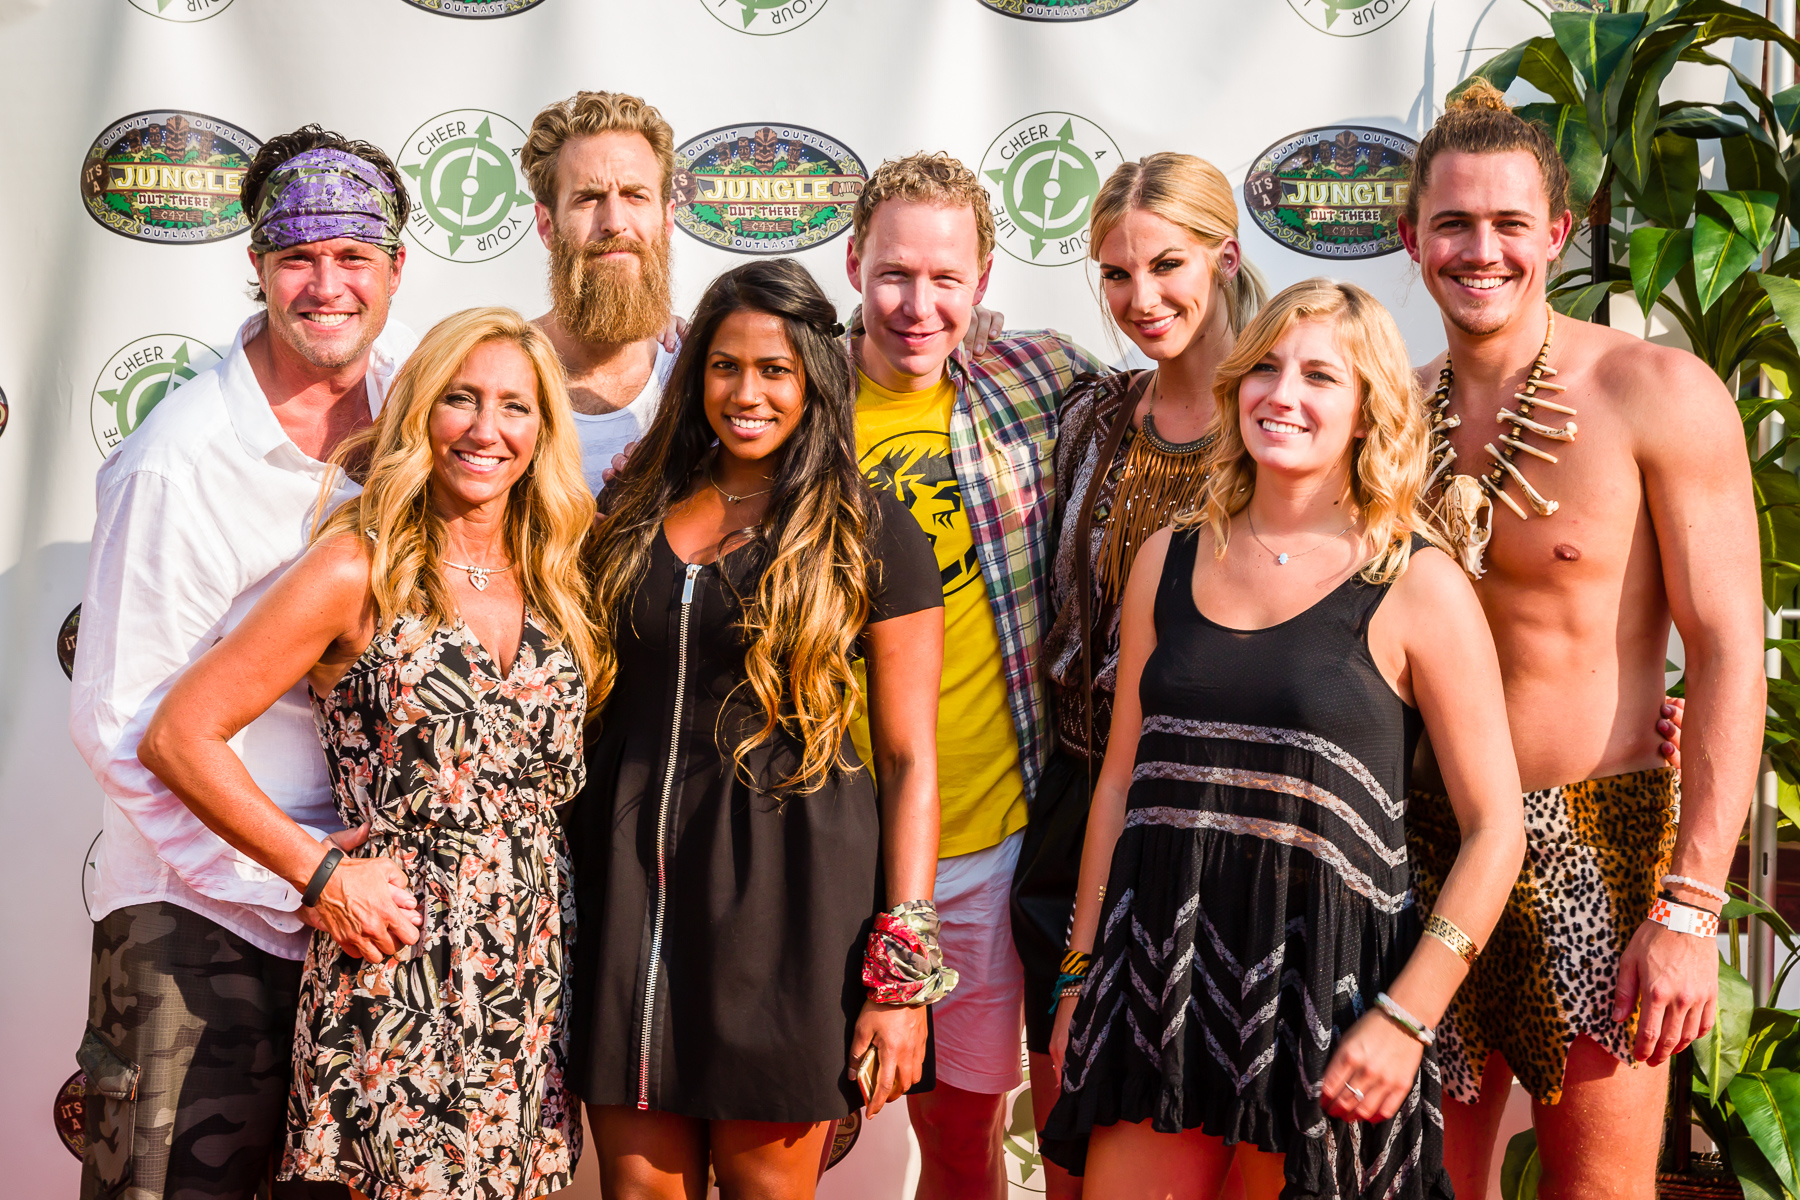 Former Survivor players at the 2015 It's A Jungle out There benefit